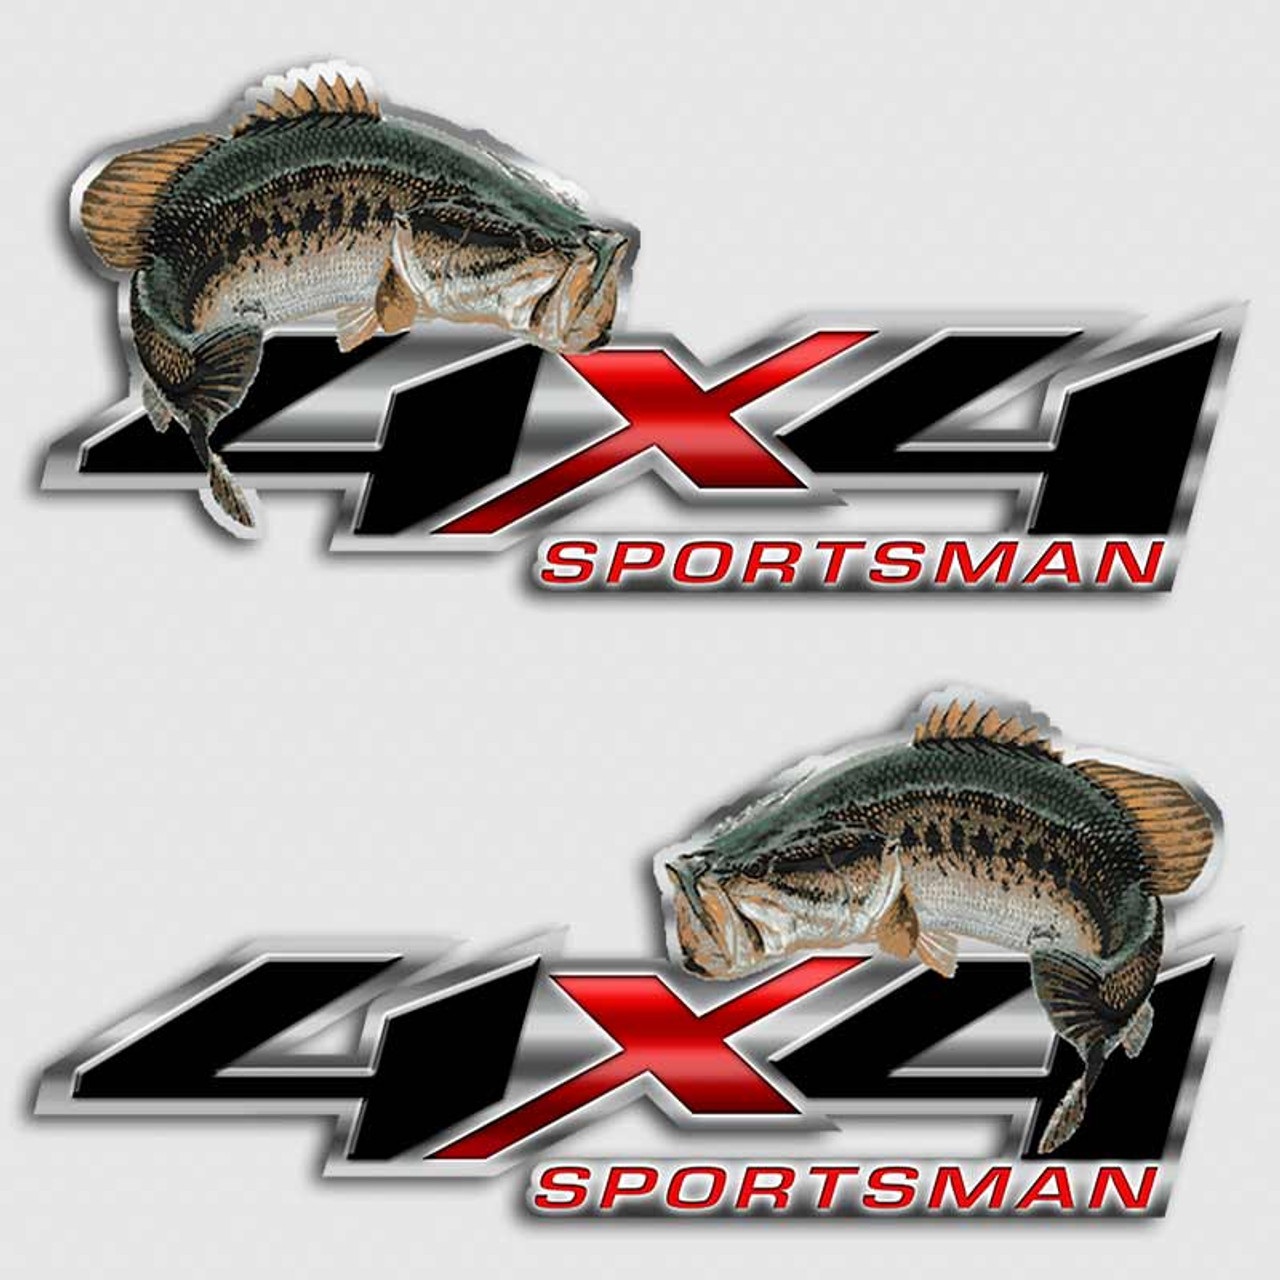 4x4 bass sportsman red off road truck decals